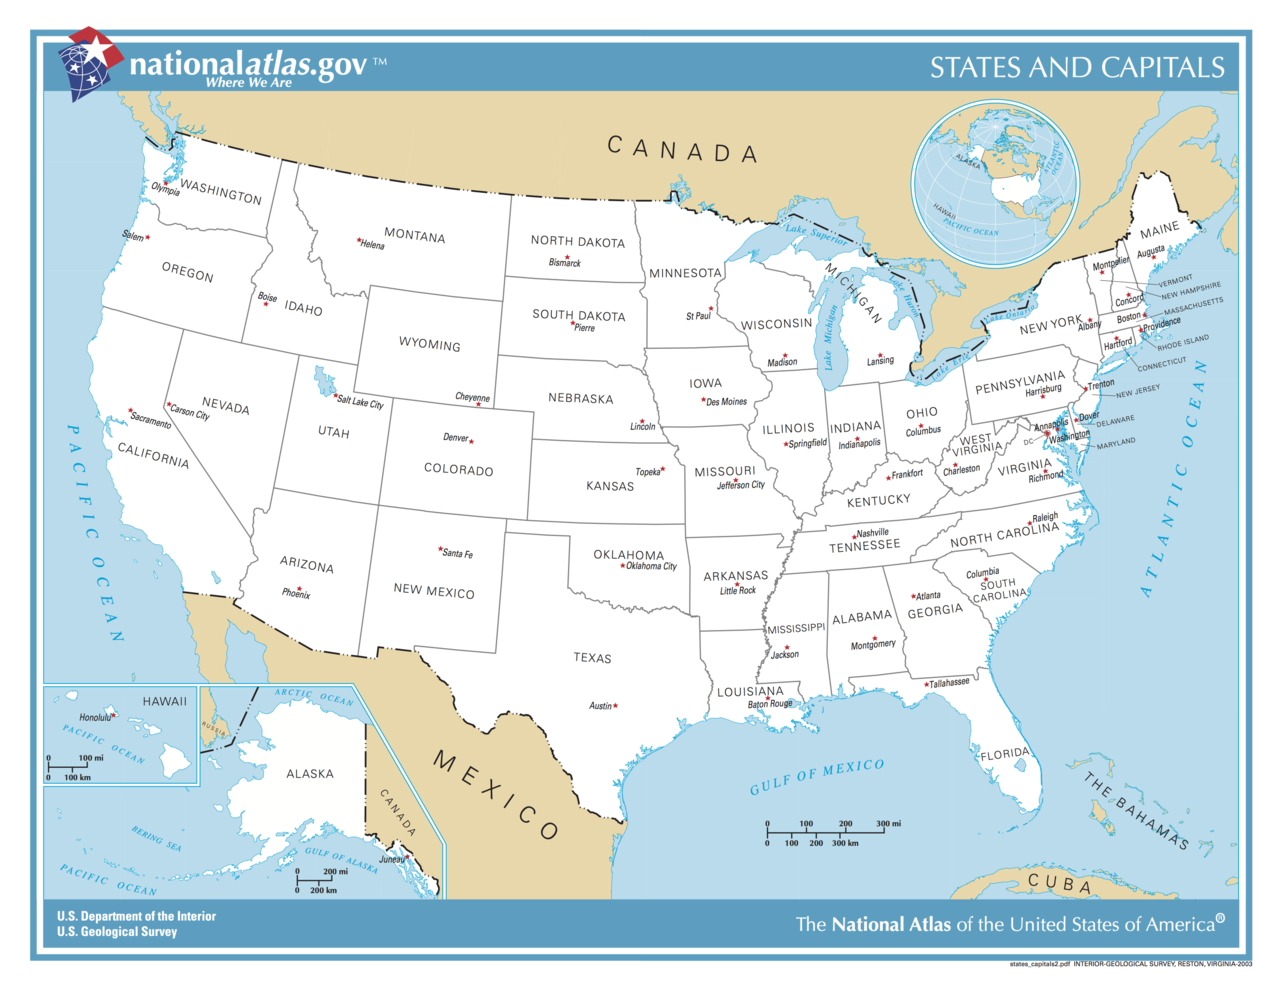 FileUS Map States And Capitalspng Wikimedia Commons - Usa map states